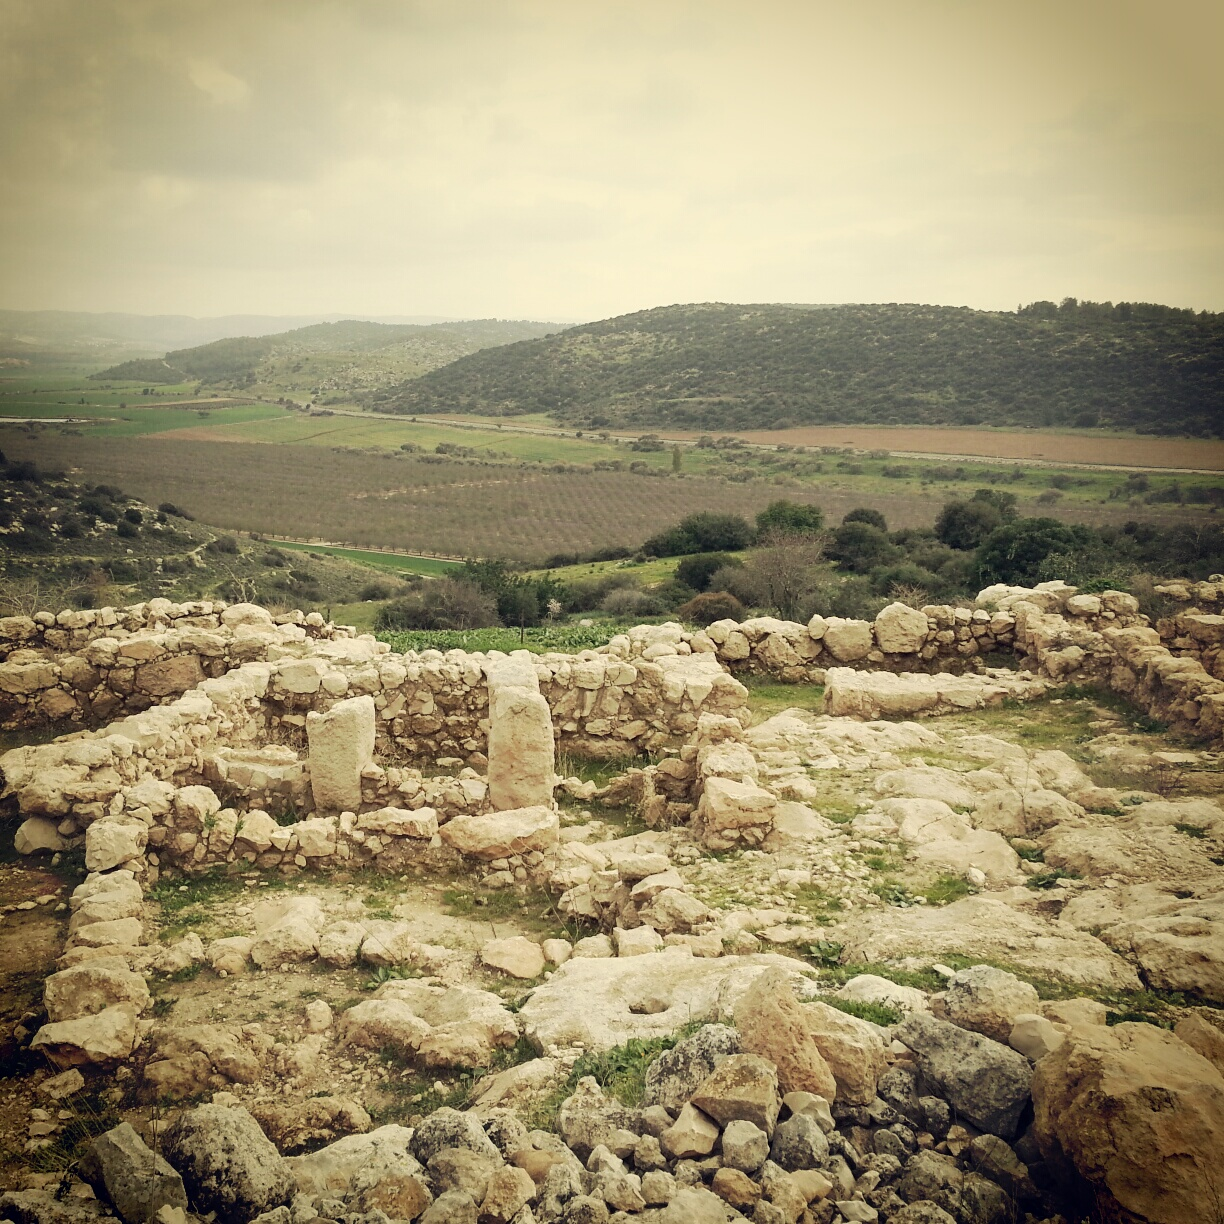 The Israelite fortress from the period of King David at Khirbet Qeiyafa